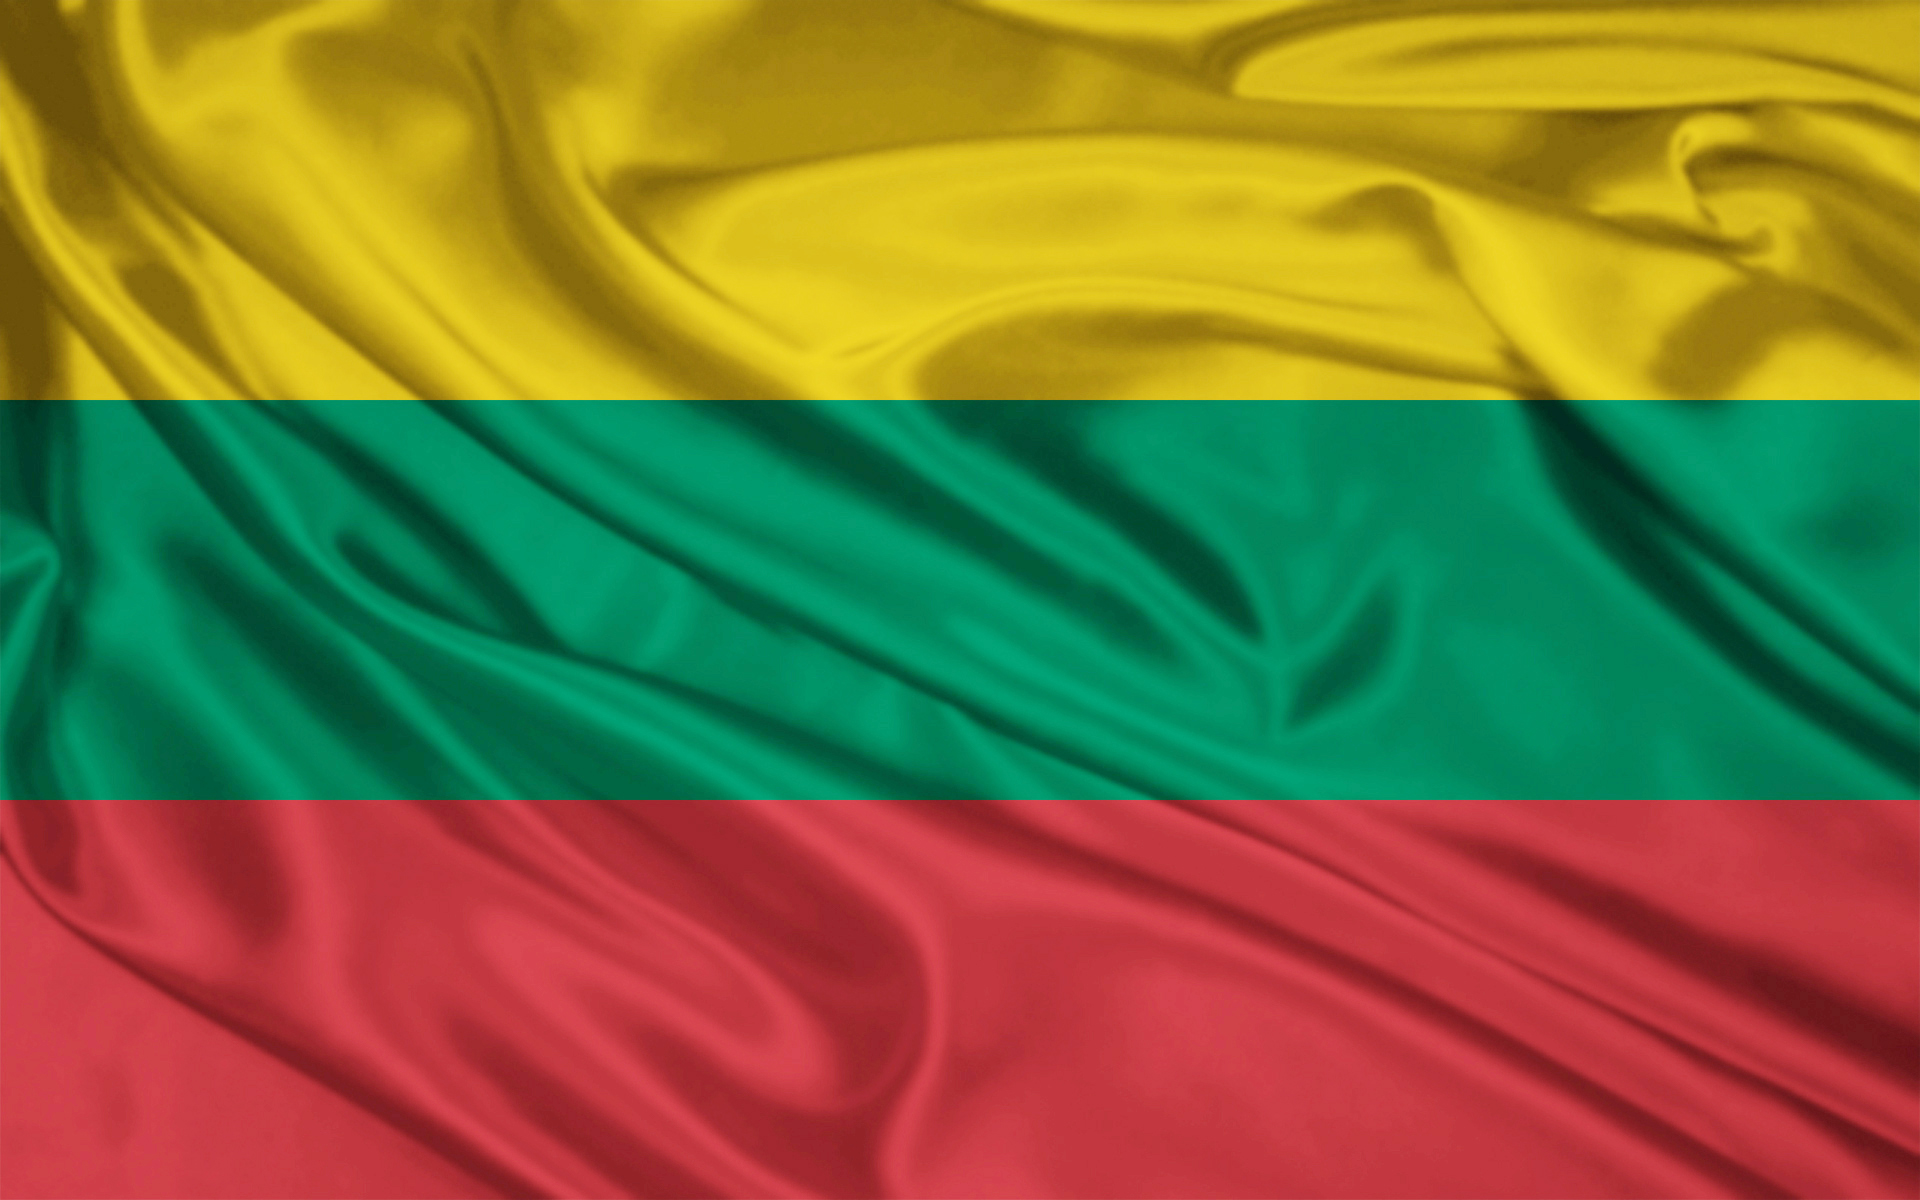 New Zealand Wallpaper Iphone X Lithuania Flag Wallpapers Lithuania Flag Stock Photos